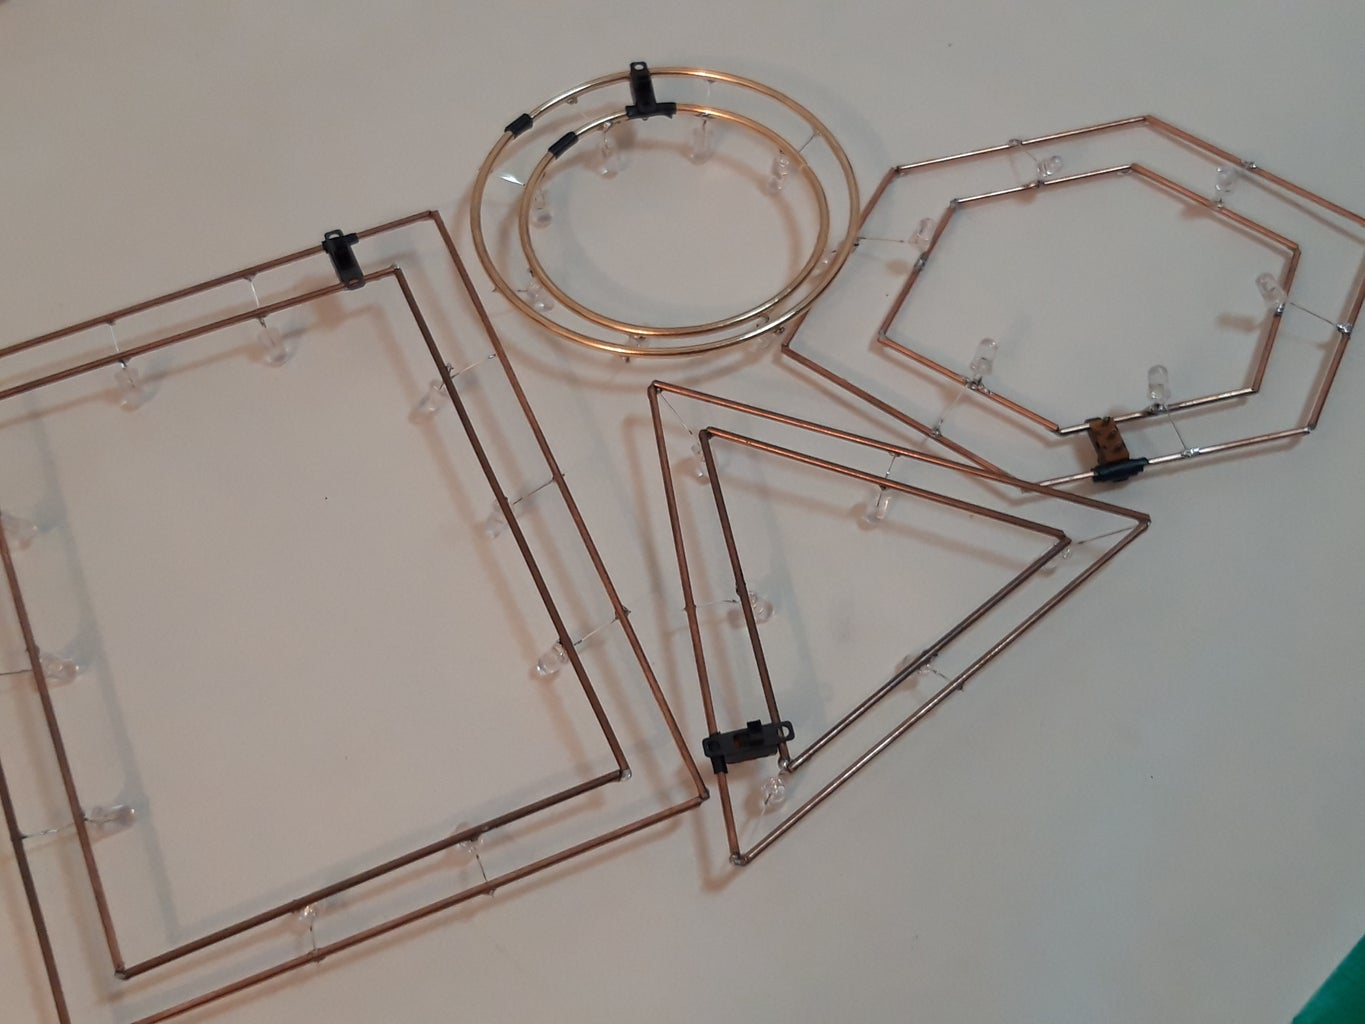 Mount the Magnetic Led Frame and Charge the Lipo Battery